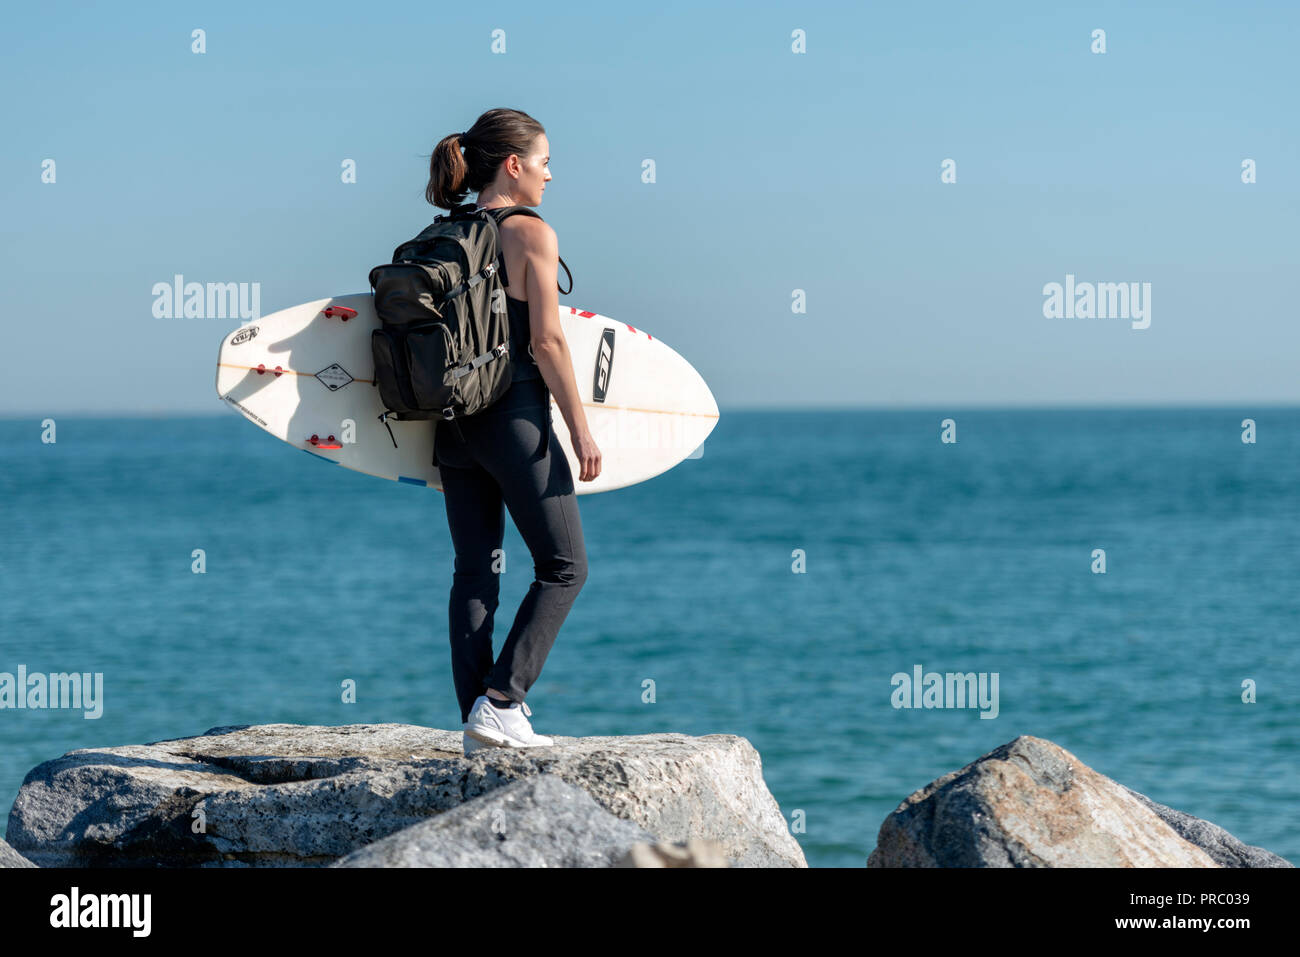 woman standing on rocks holding a surfboard checking out the sea before surfing. Stock Photo